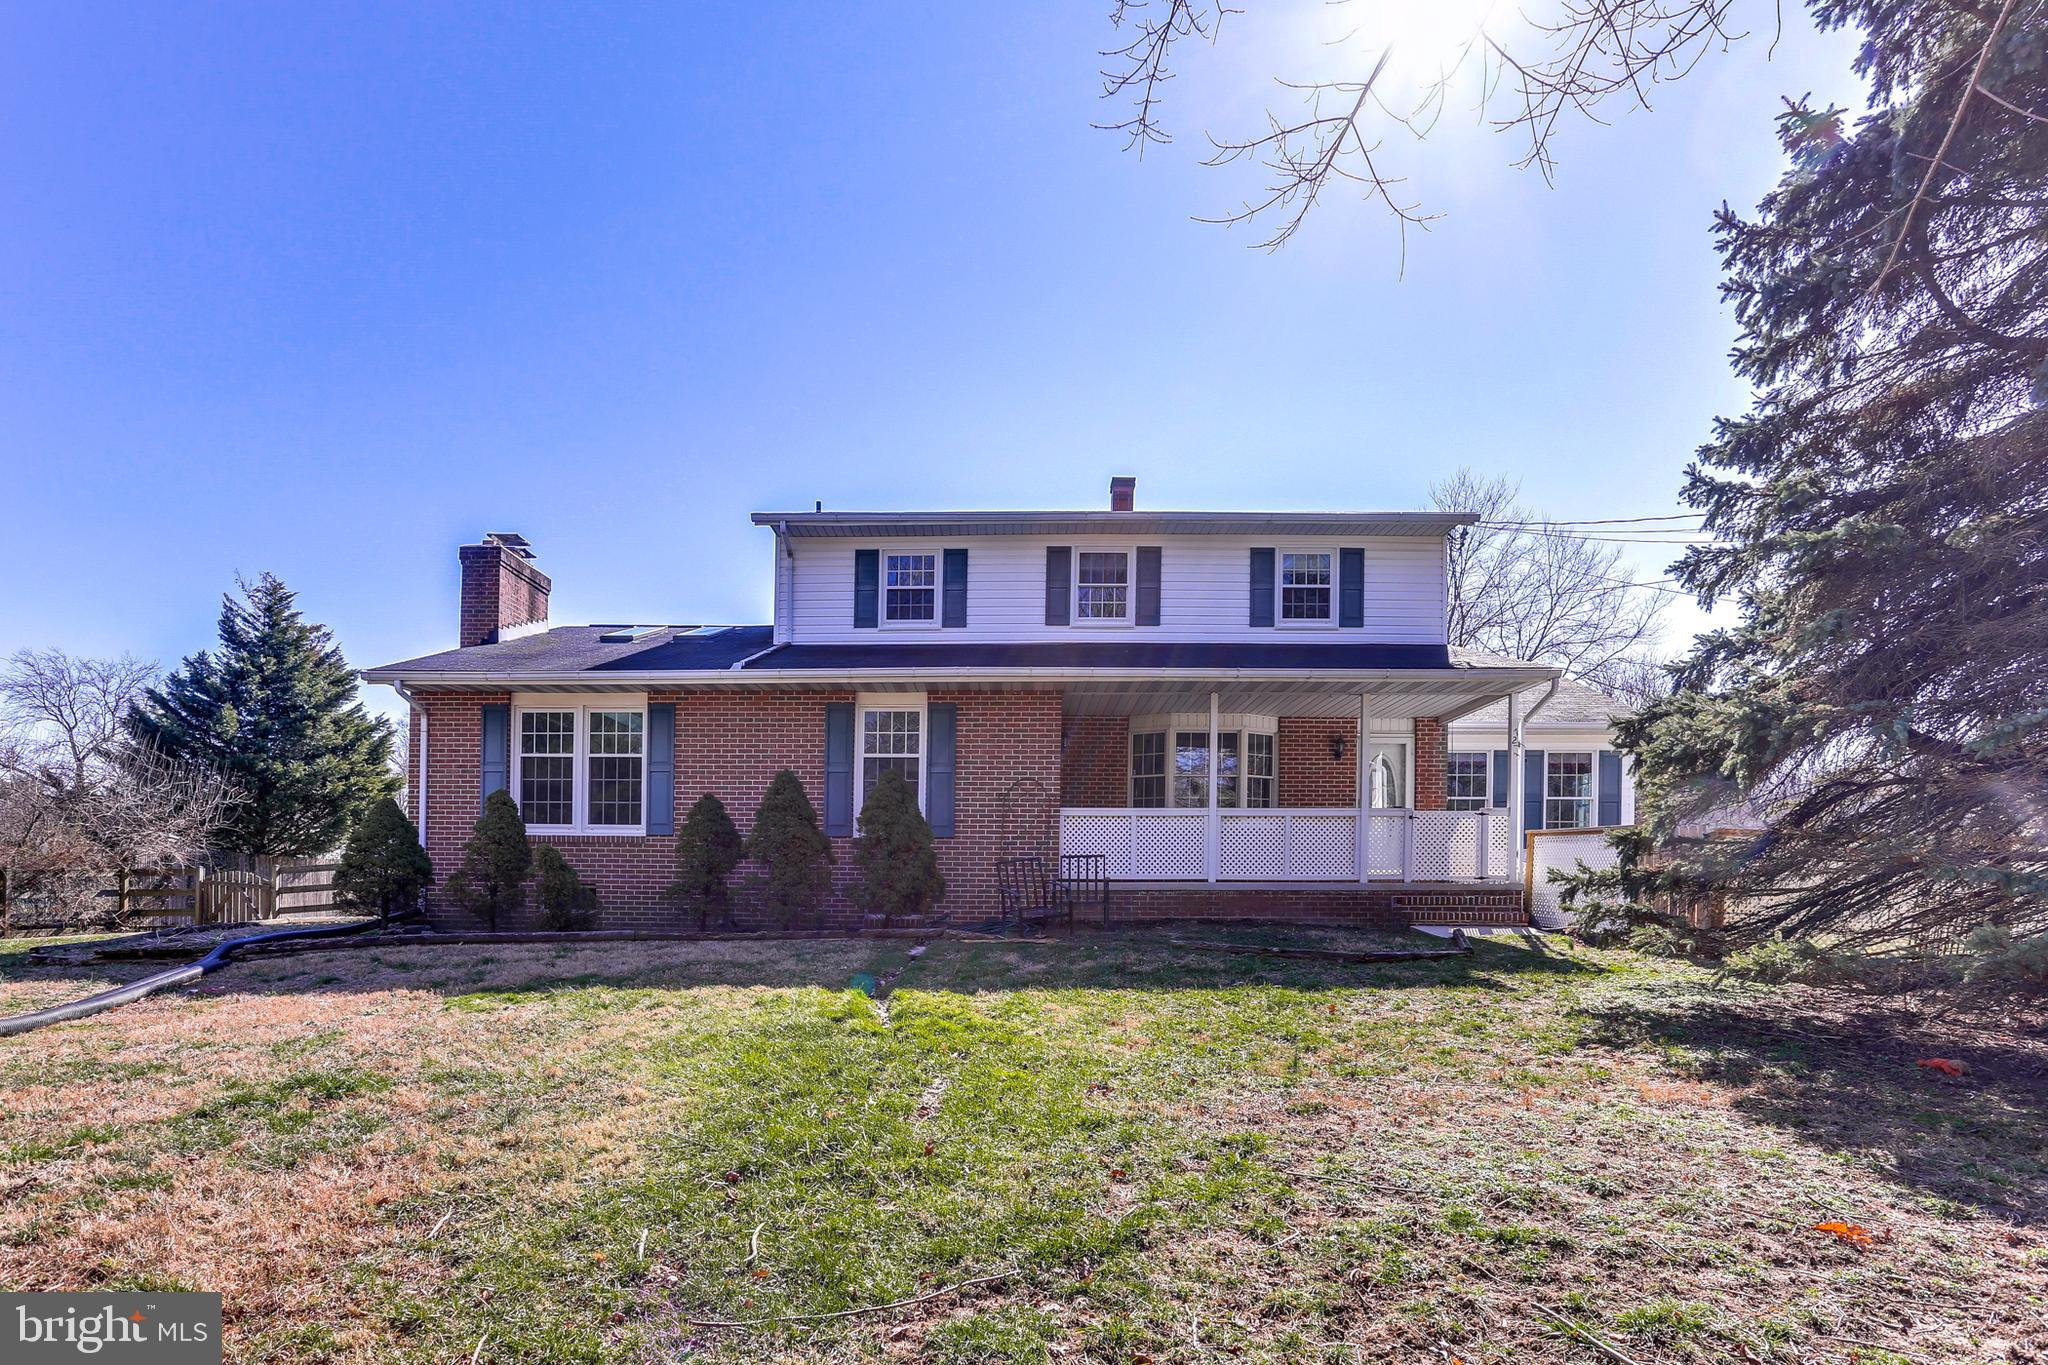 7213 FOREST AVENUE, HANOVER, MD 21076